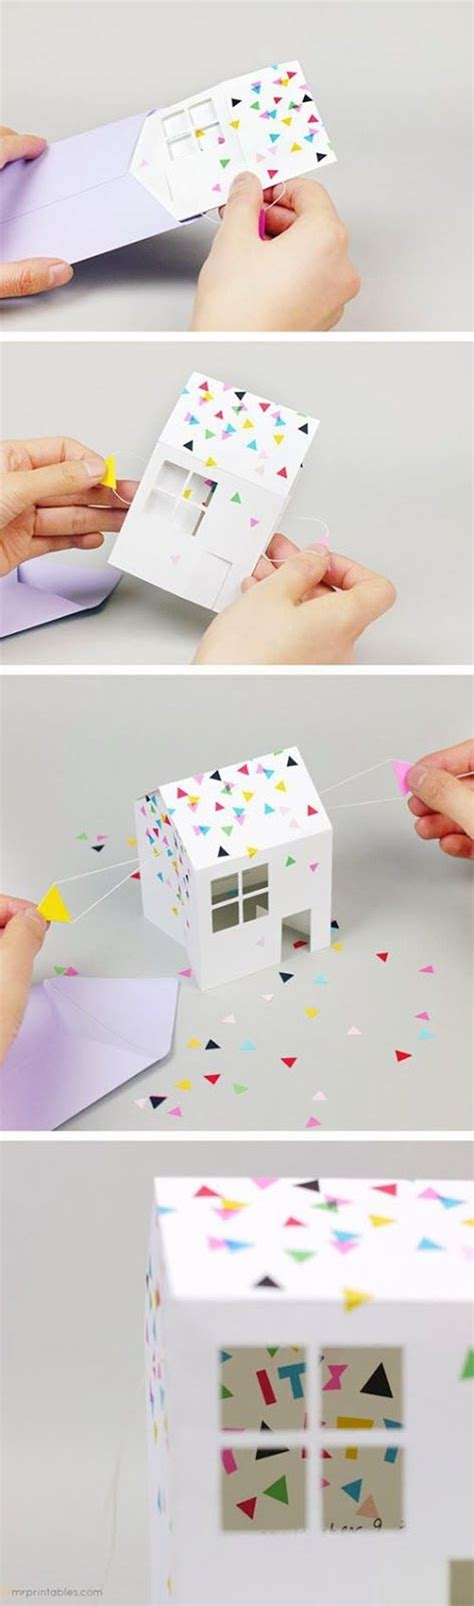 Papercrafting Ideas - creative paper craft ideas 30 picked